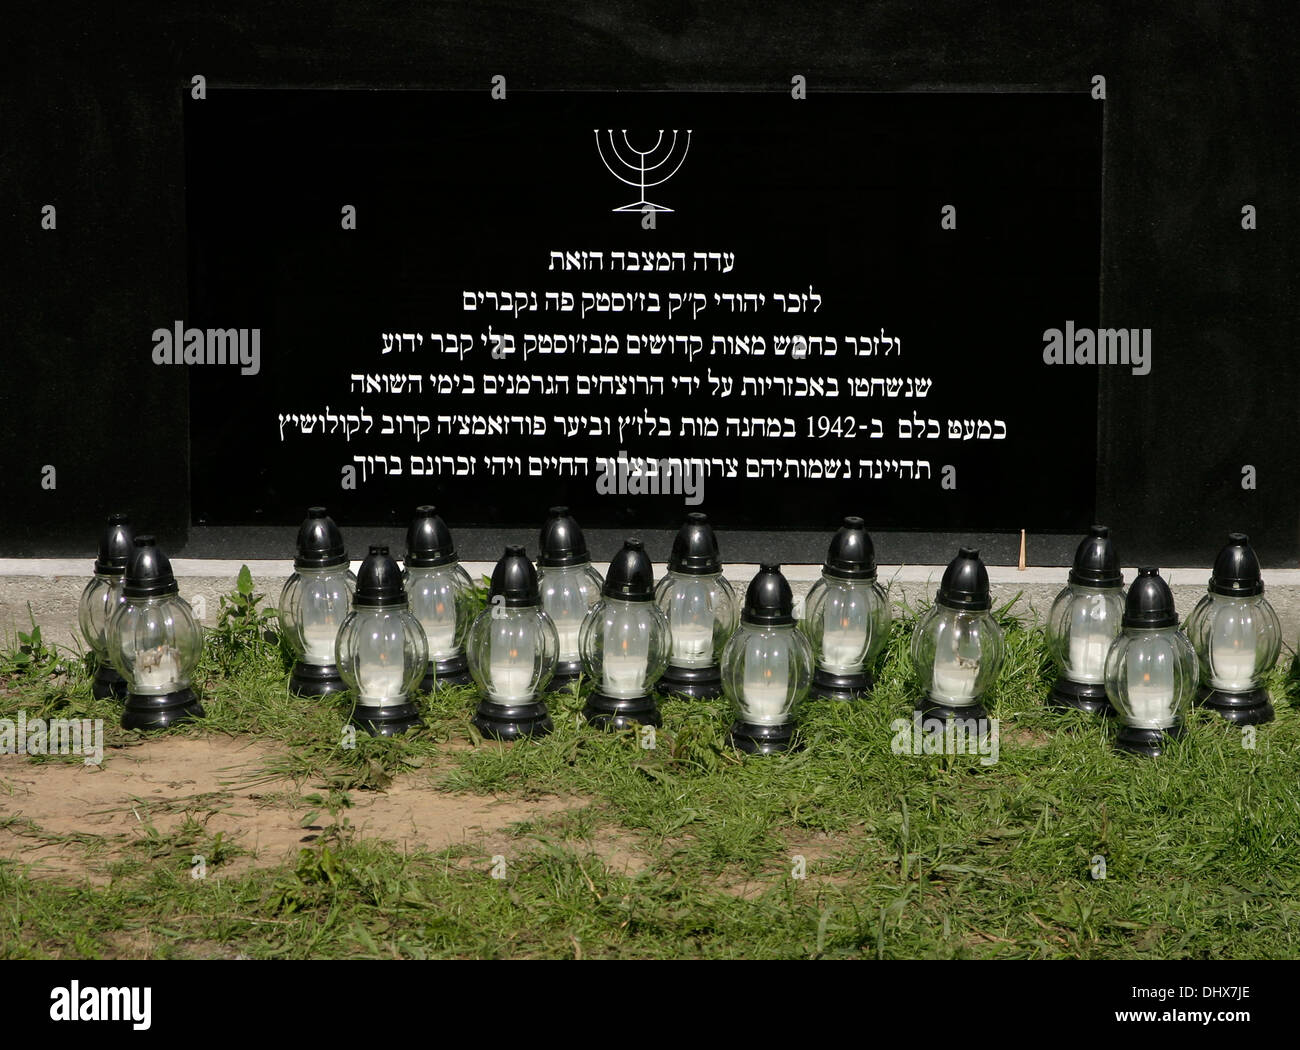 Hebrew inscription on memorial stone in Brzostek Jewish cemetery Poland, memorial lamps placed in front of stone - Stock Image